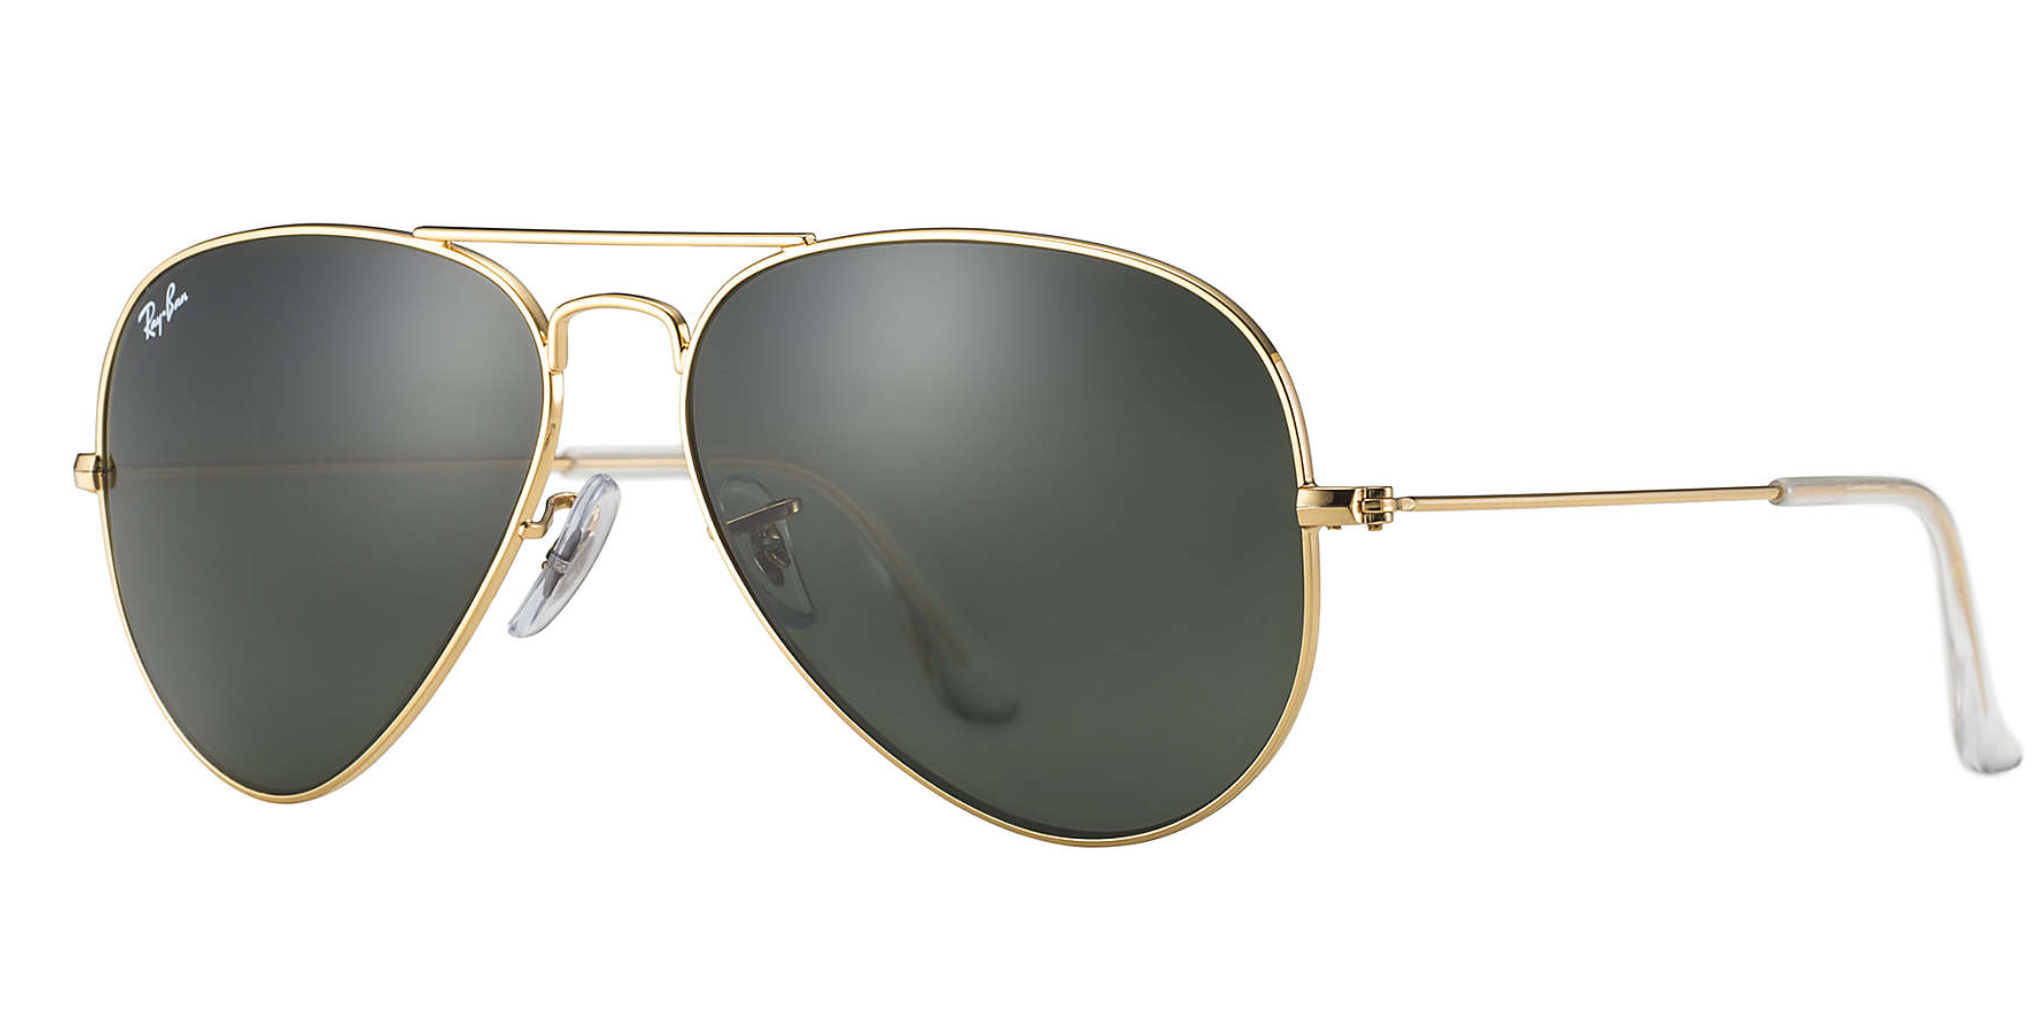 d17fc5a9ca Ray-Ban Aviator Classic G-15 Sunglasses ORB 3025 - Flight Sunglasses